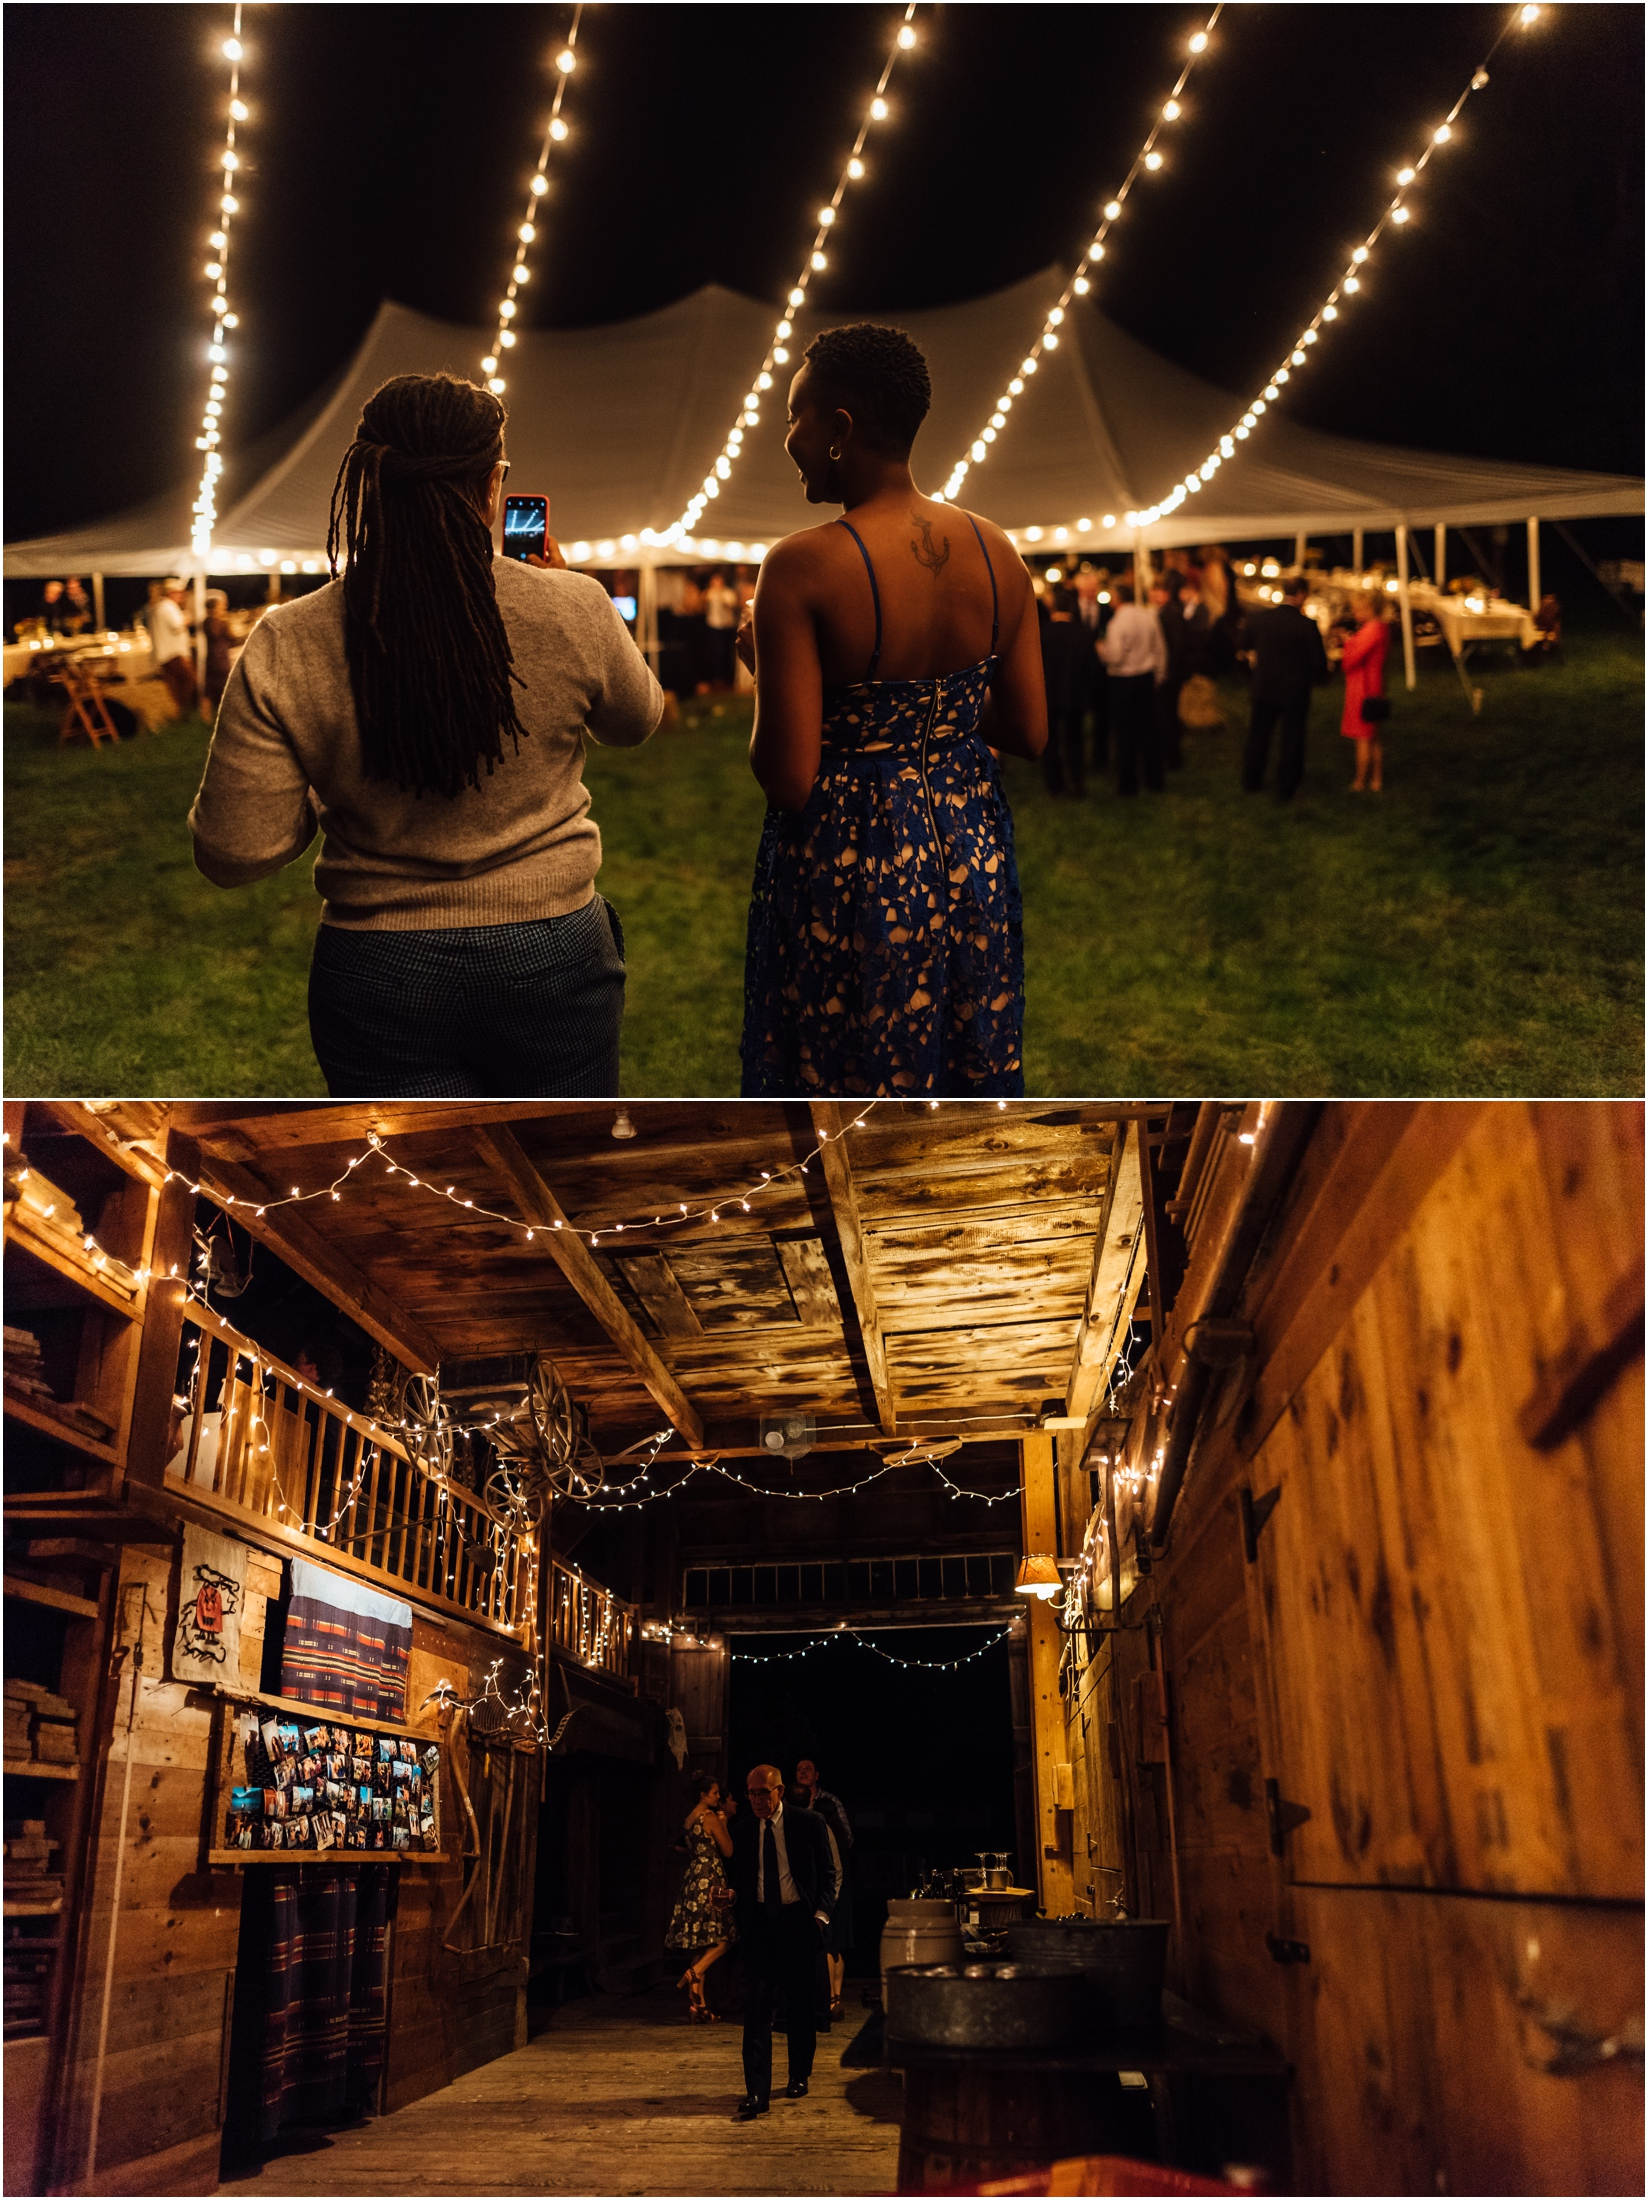 Kate_and_Michele_New_Hampshire_wedding_the_photo_farm_0636.jpg